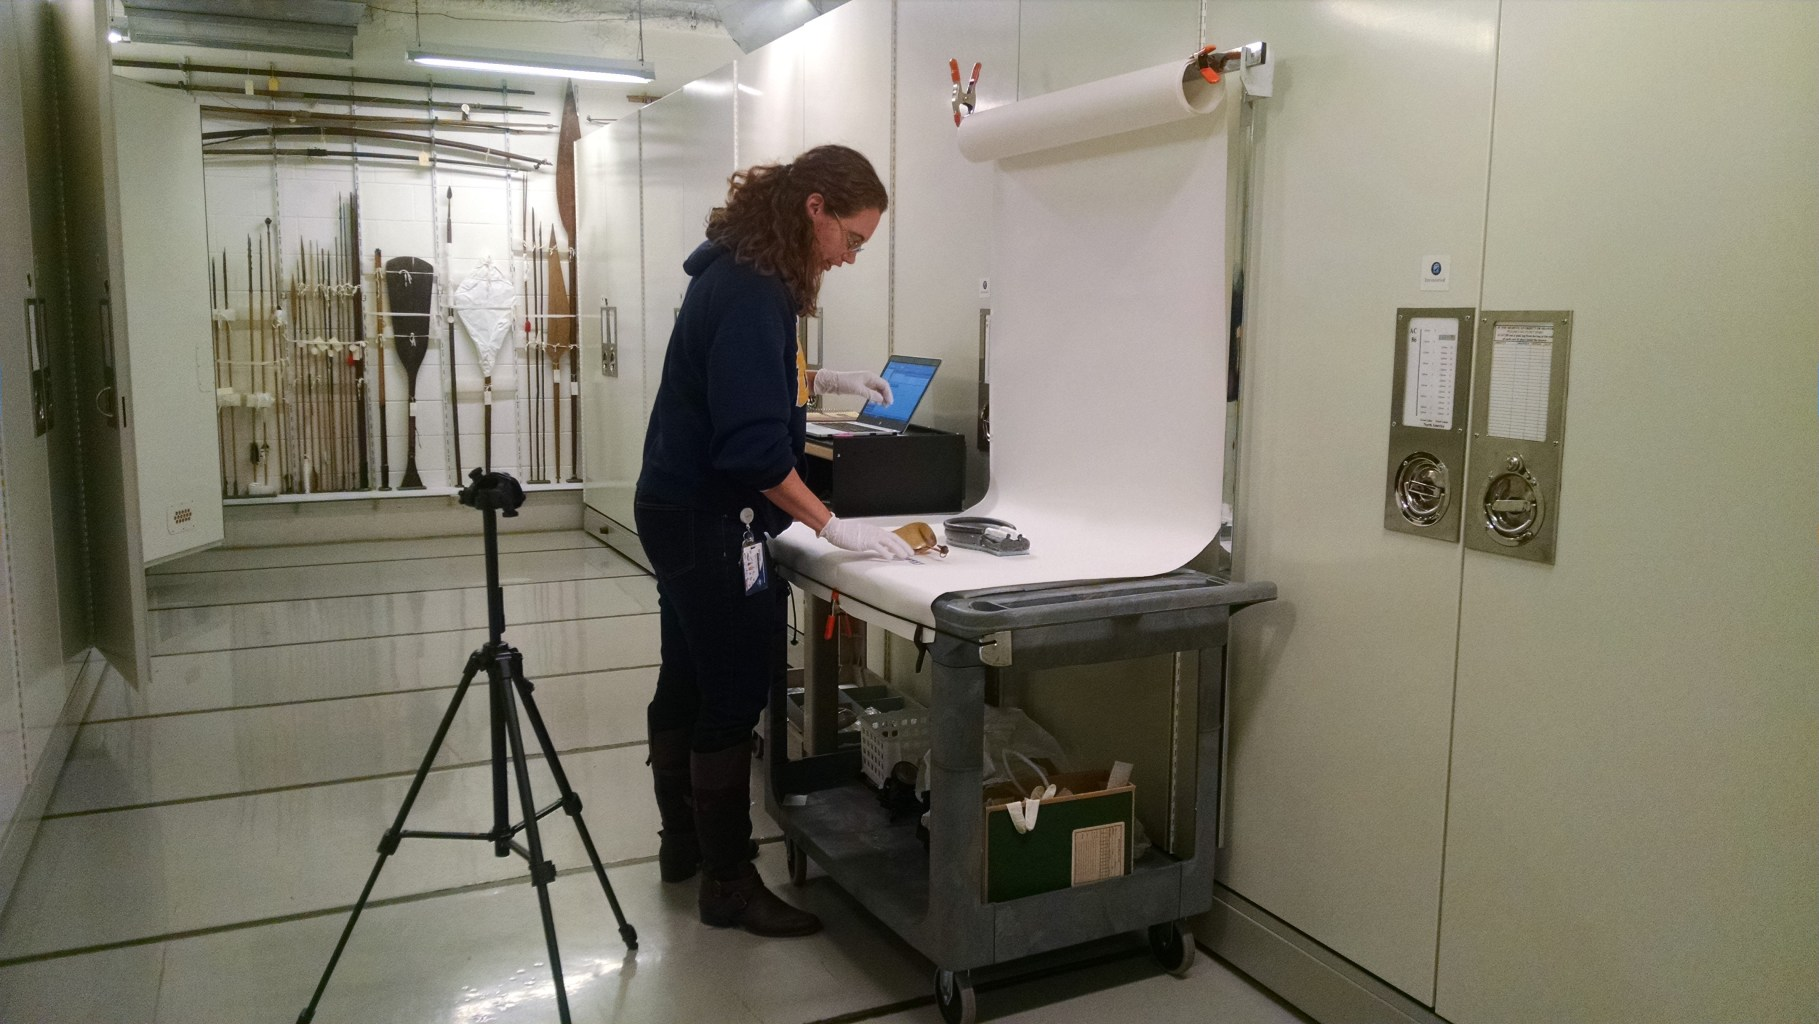 A museum employee stands at an imaging station with an object laid out on a white sheet of paper, and a camera pointed at it.